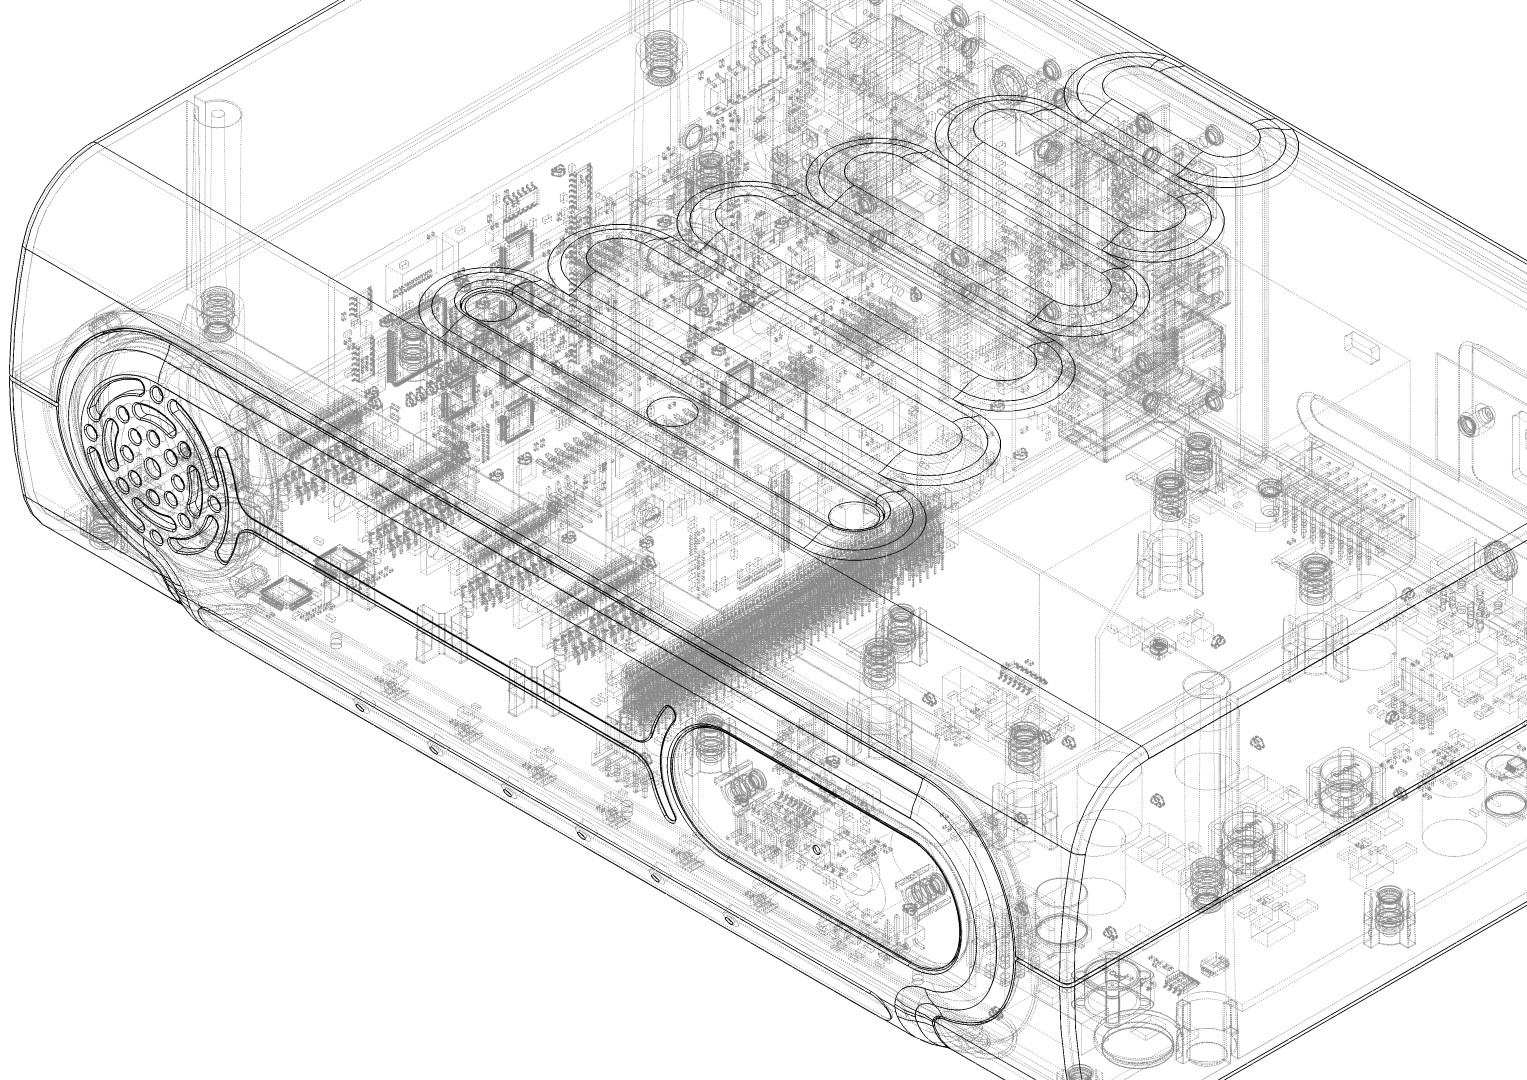 Mechanical Engineering Drawing At Getdrawings